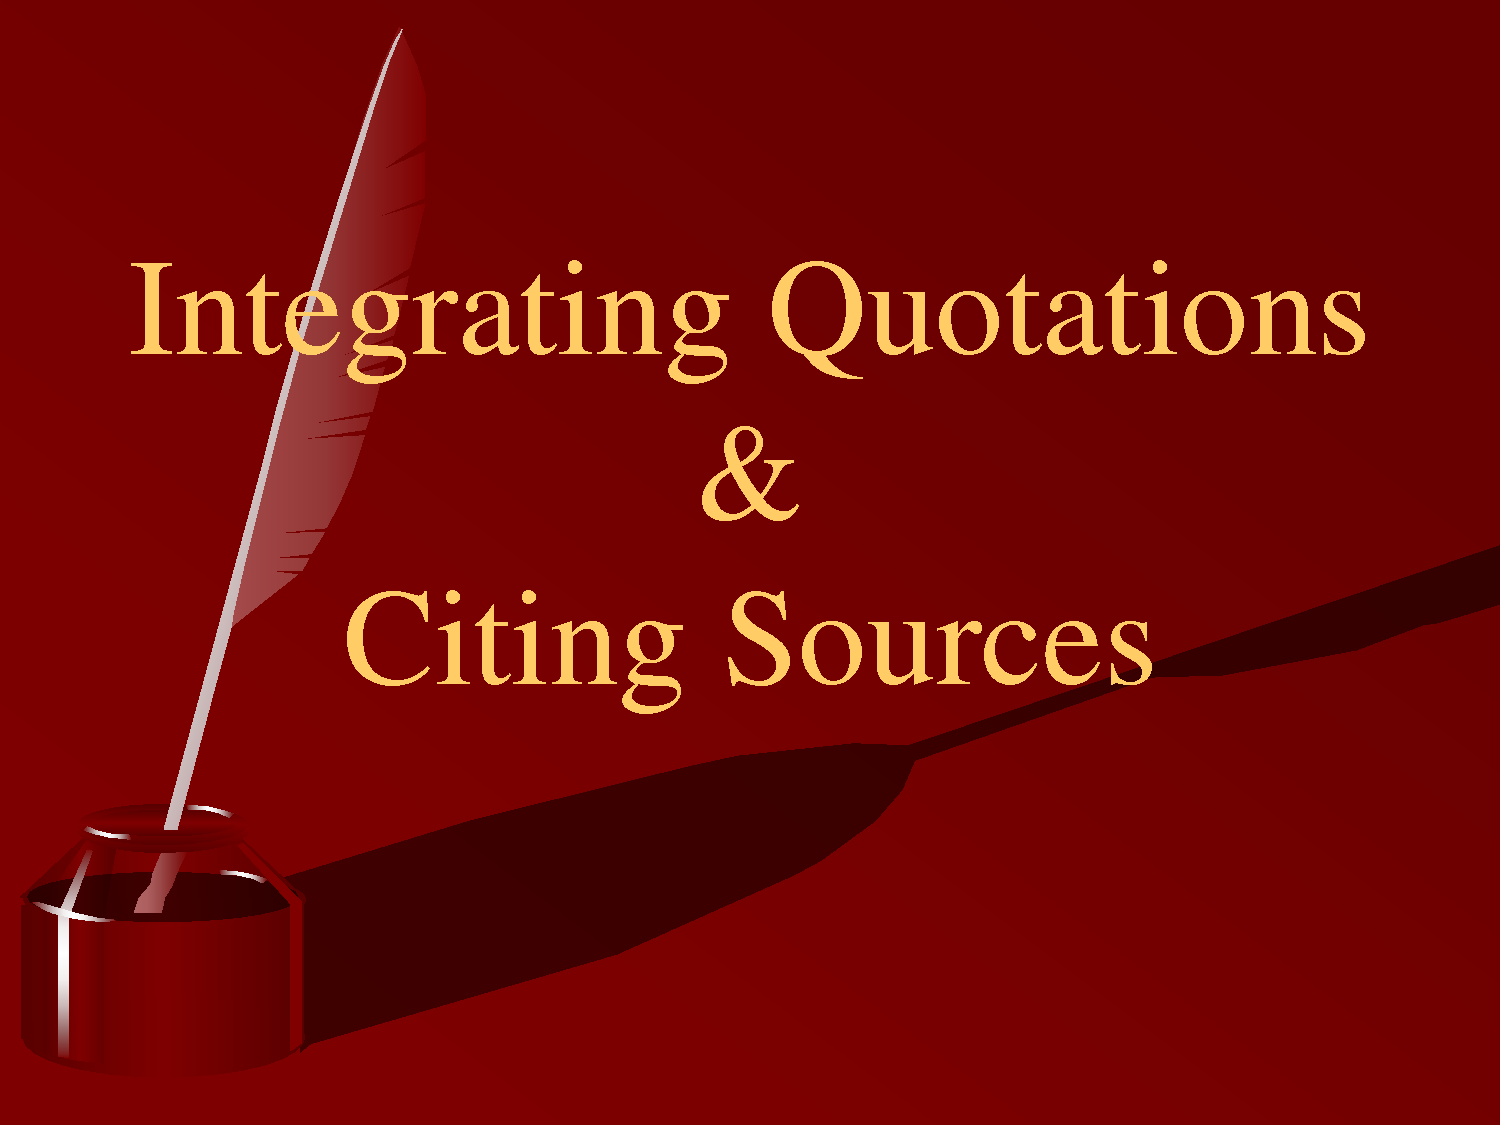 andrew harnack integrating quotations Quotes from industry staff, independent experts, and study investigators were  collated  for assessment of hyping 'spin' and incorporating into the checklist  commonly  schwartz lm, woloshin s, andrews a, stukel ta (2012) influence  of  mursu j, robien k, harnack lj, park k, jacobs dr jr (2011).